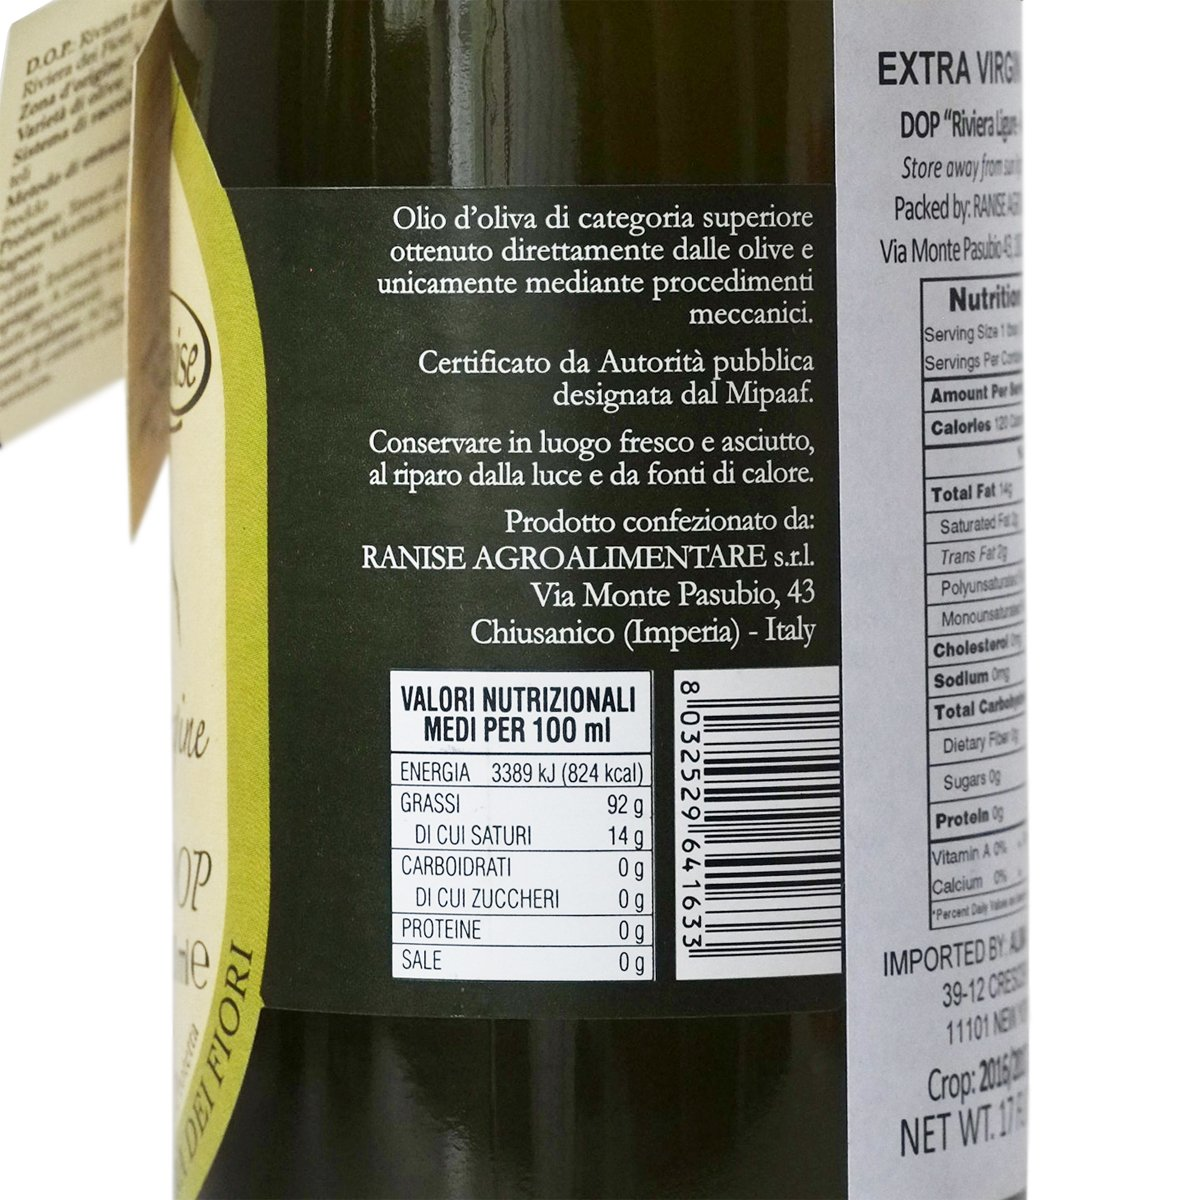 Ligurian Italian Extra Virgin Olive Oil DOP 16.9 fl oz - Pack of 2 by Ranise (Image #2)